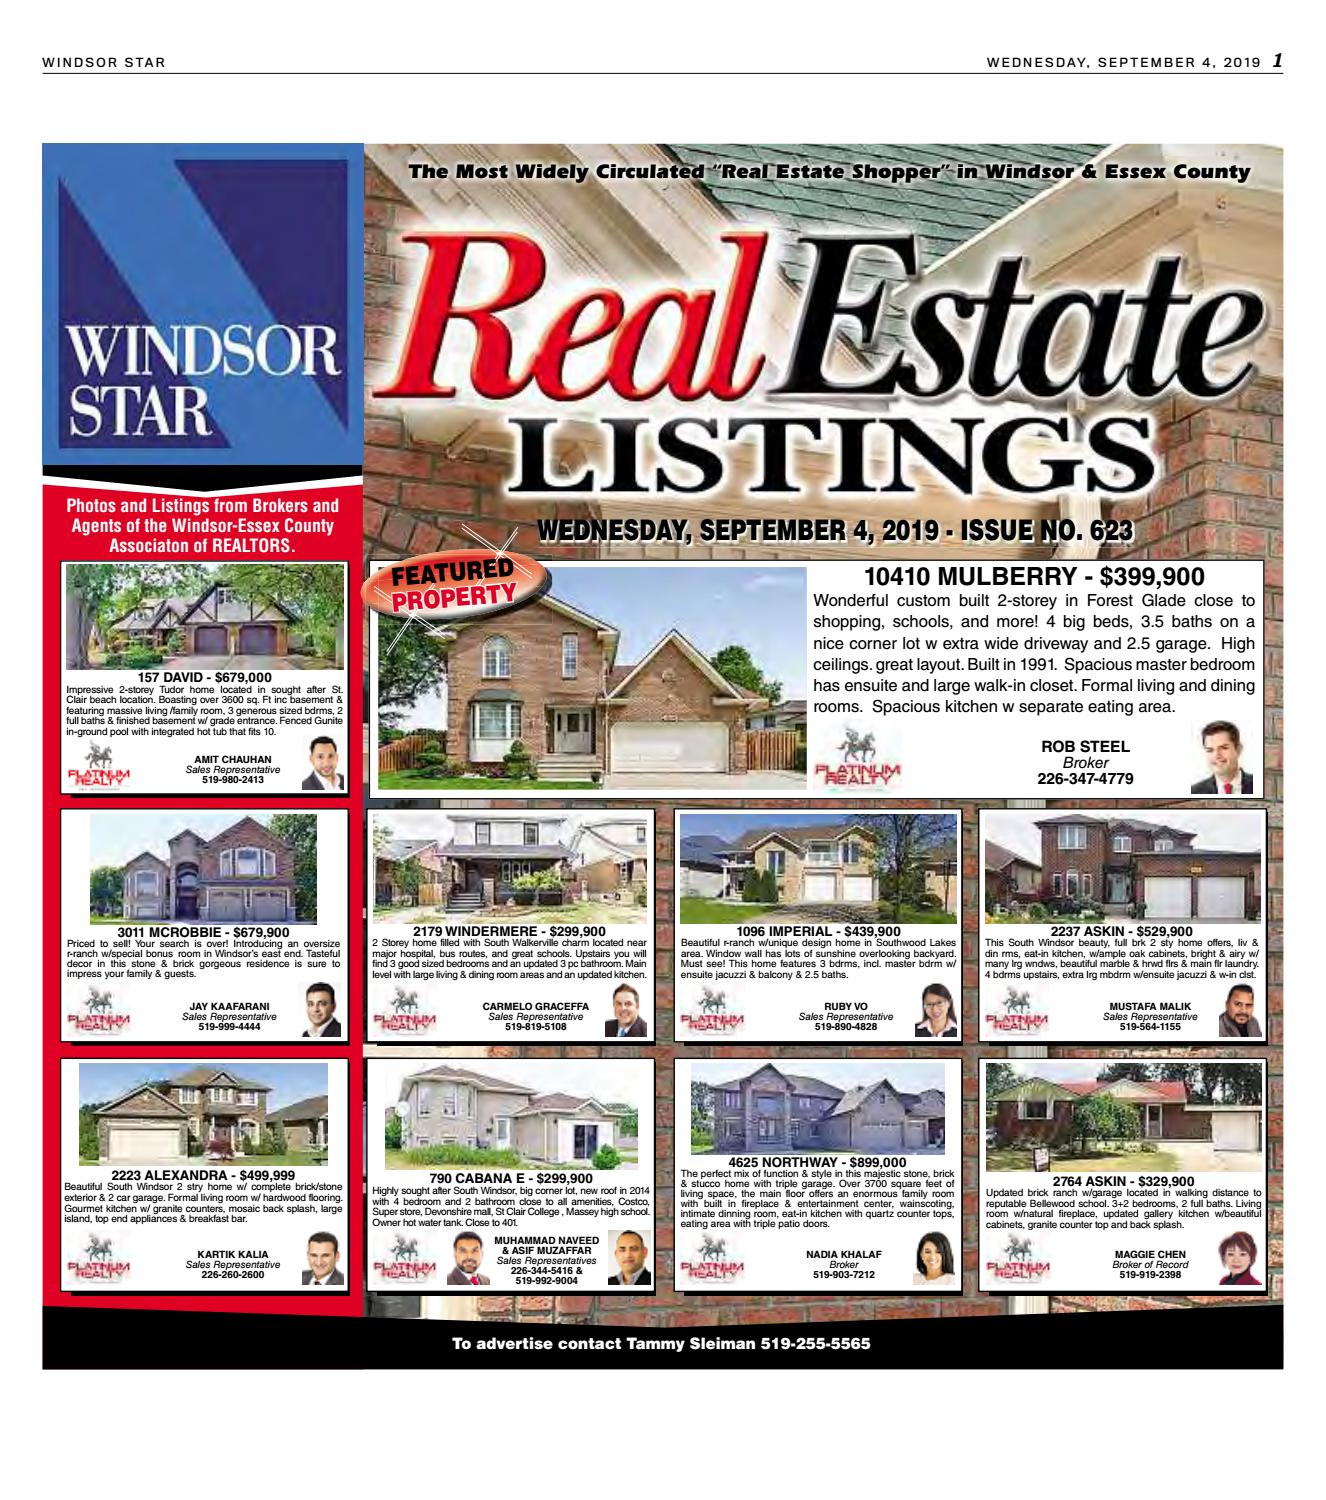 Real Estate Listings - Windsor Star - Sept  4, 2109 by The